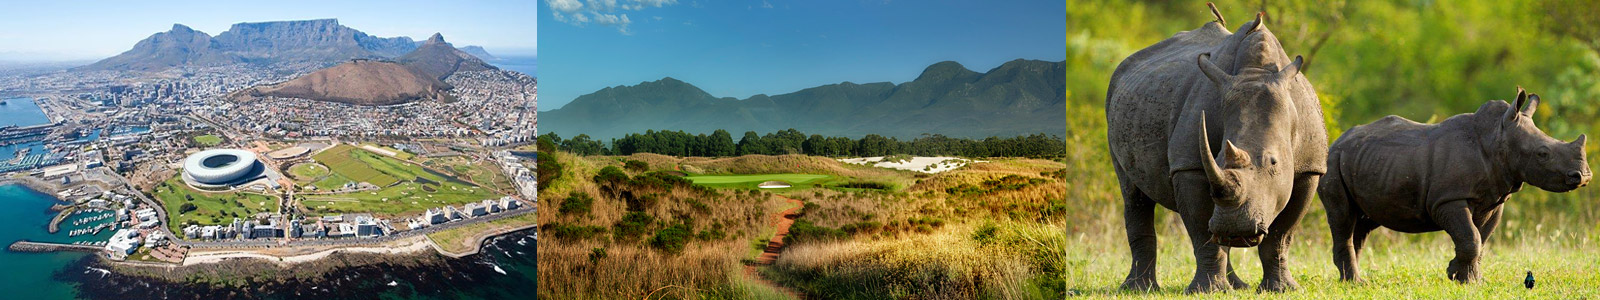 The Best of South Africa 2017 ~ Golf, Safari, Cape Town, the Winelands & Garden Route